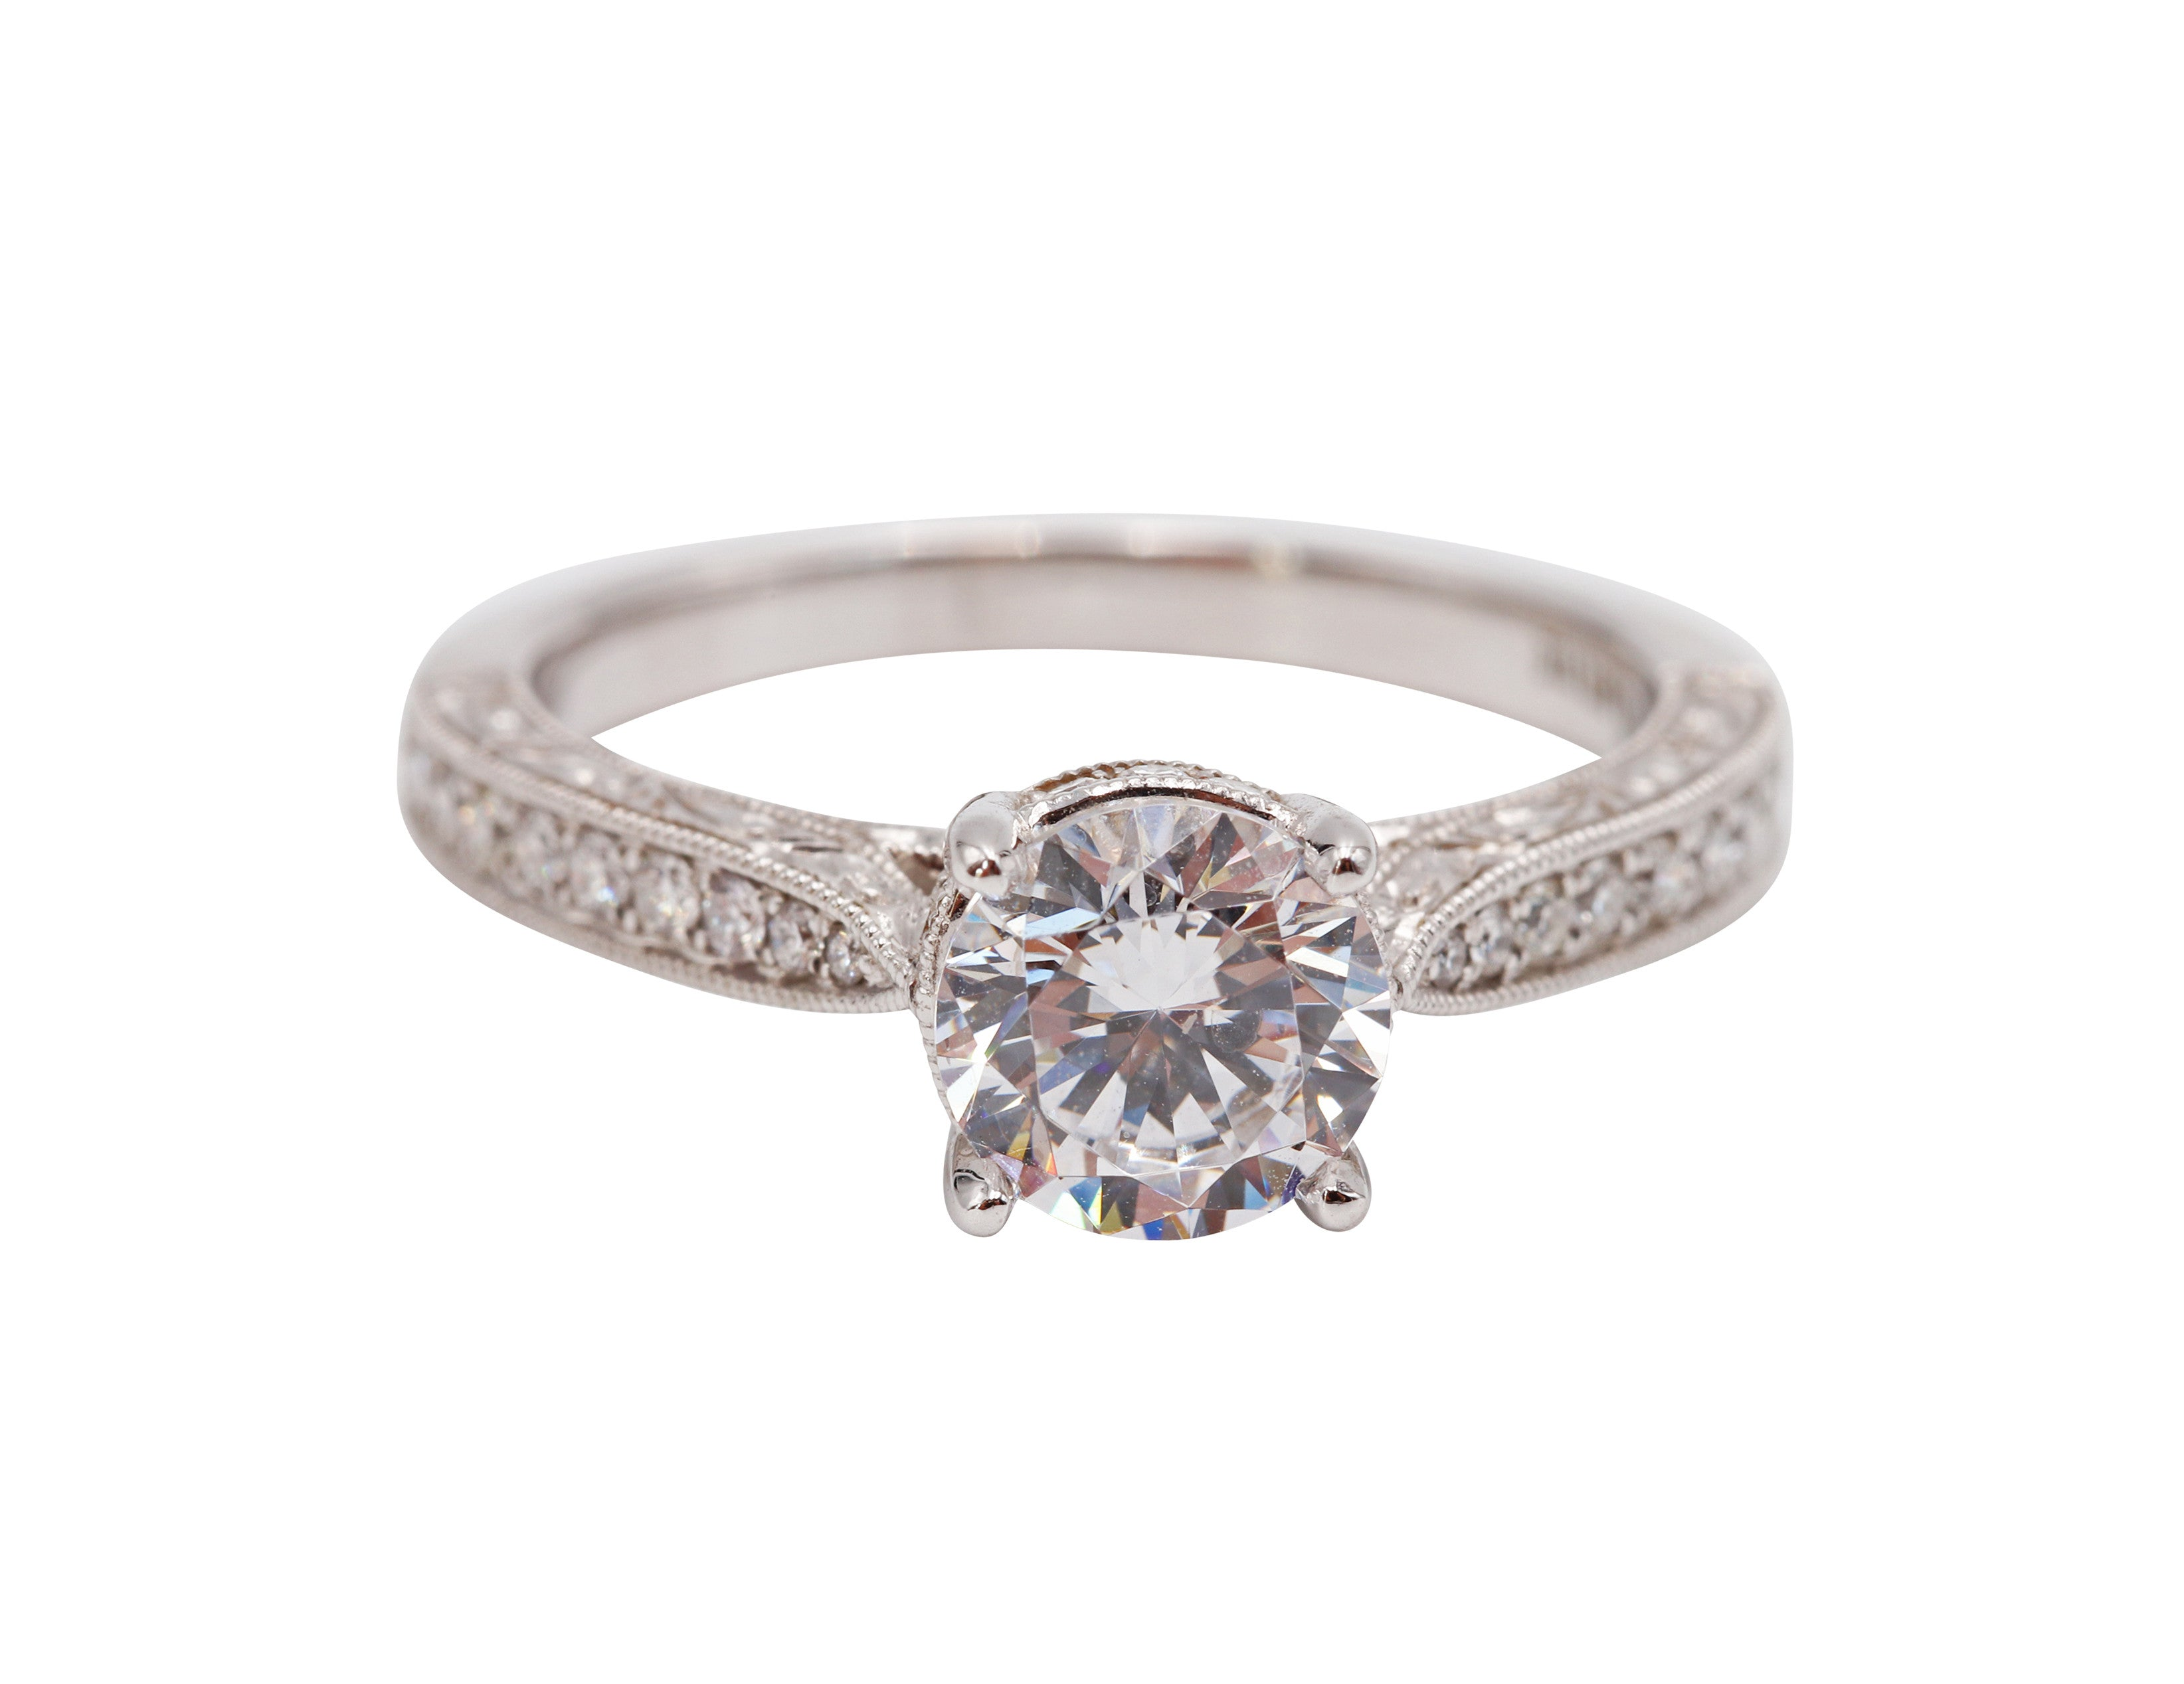 h claw solitaire engagement ring jewellery